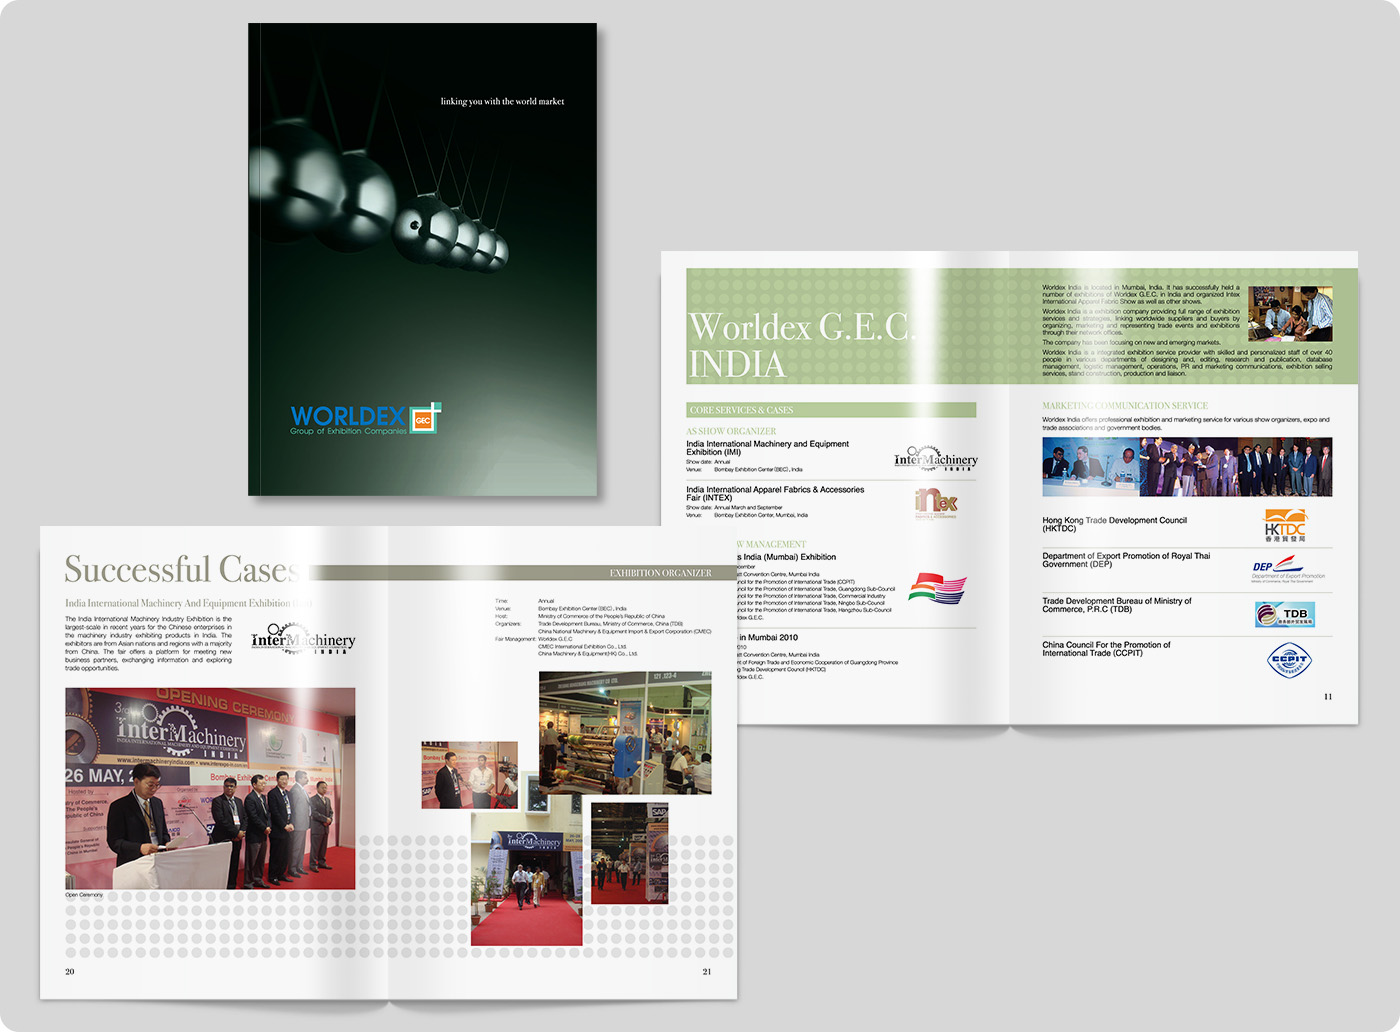 Worldex GEC Corporate Brochure Design